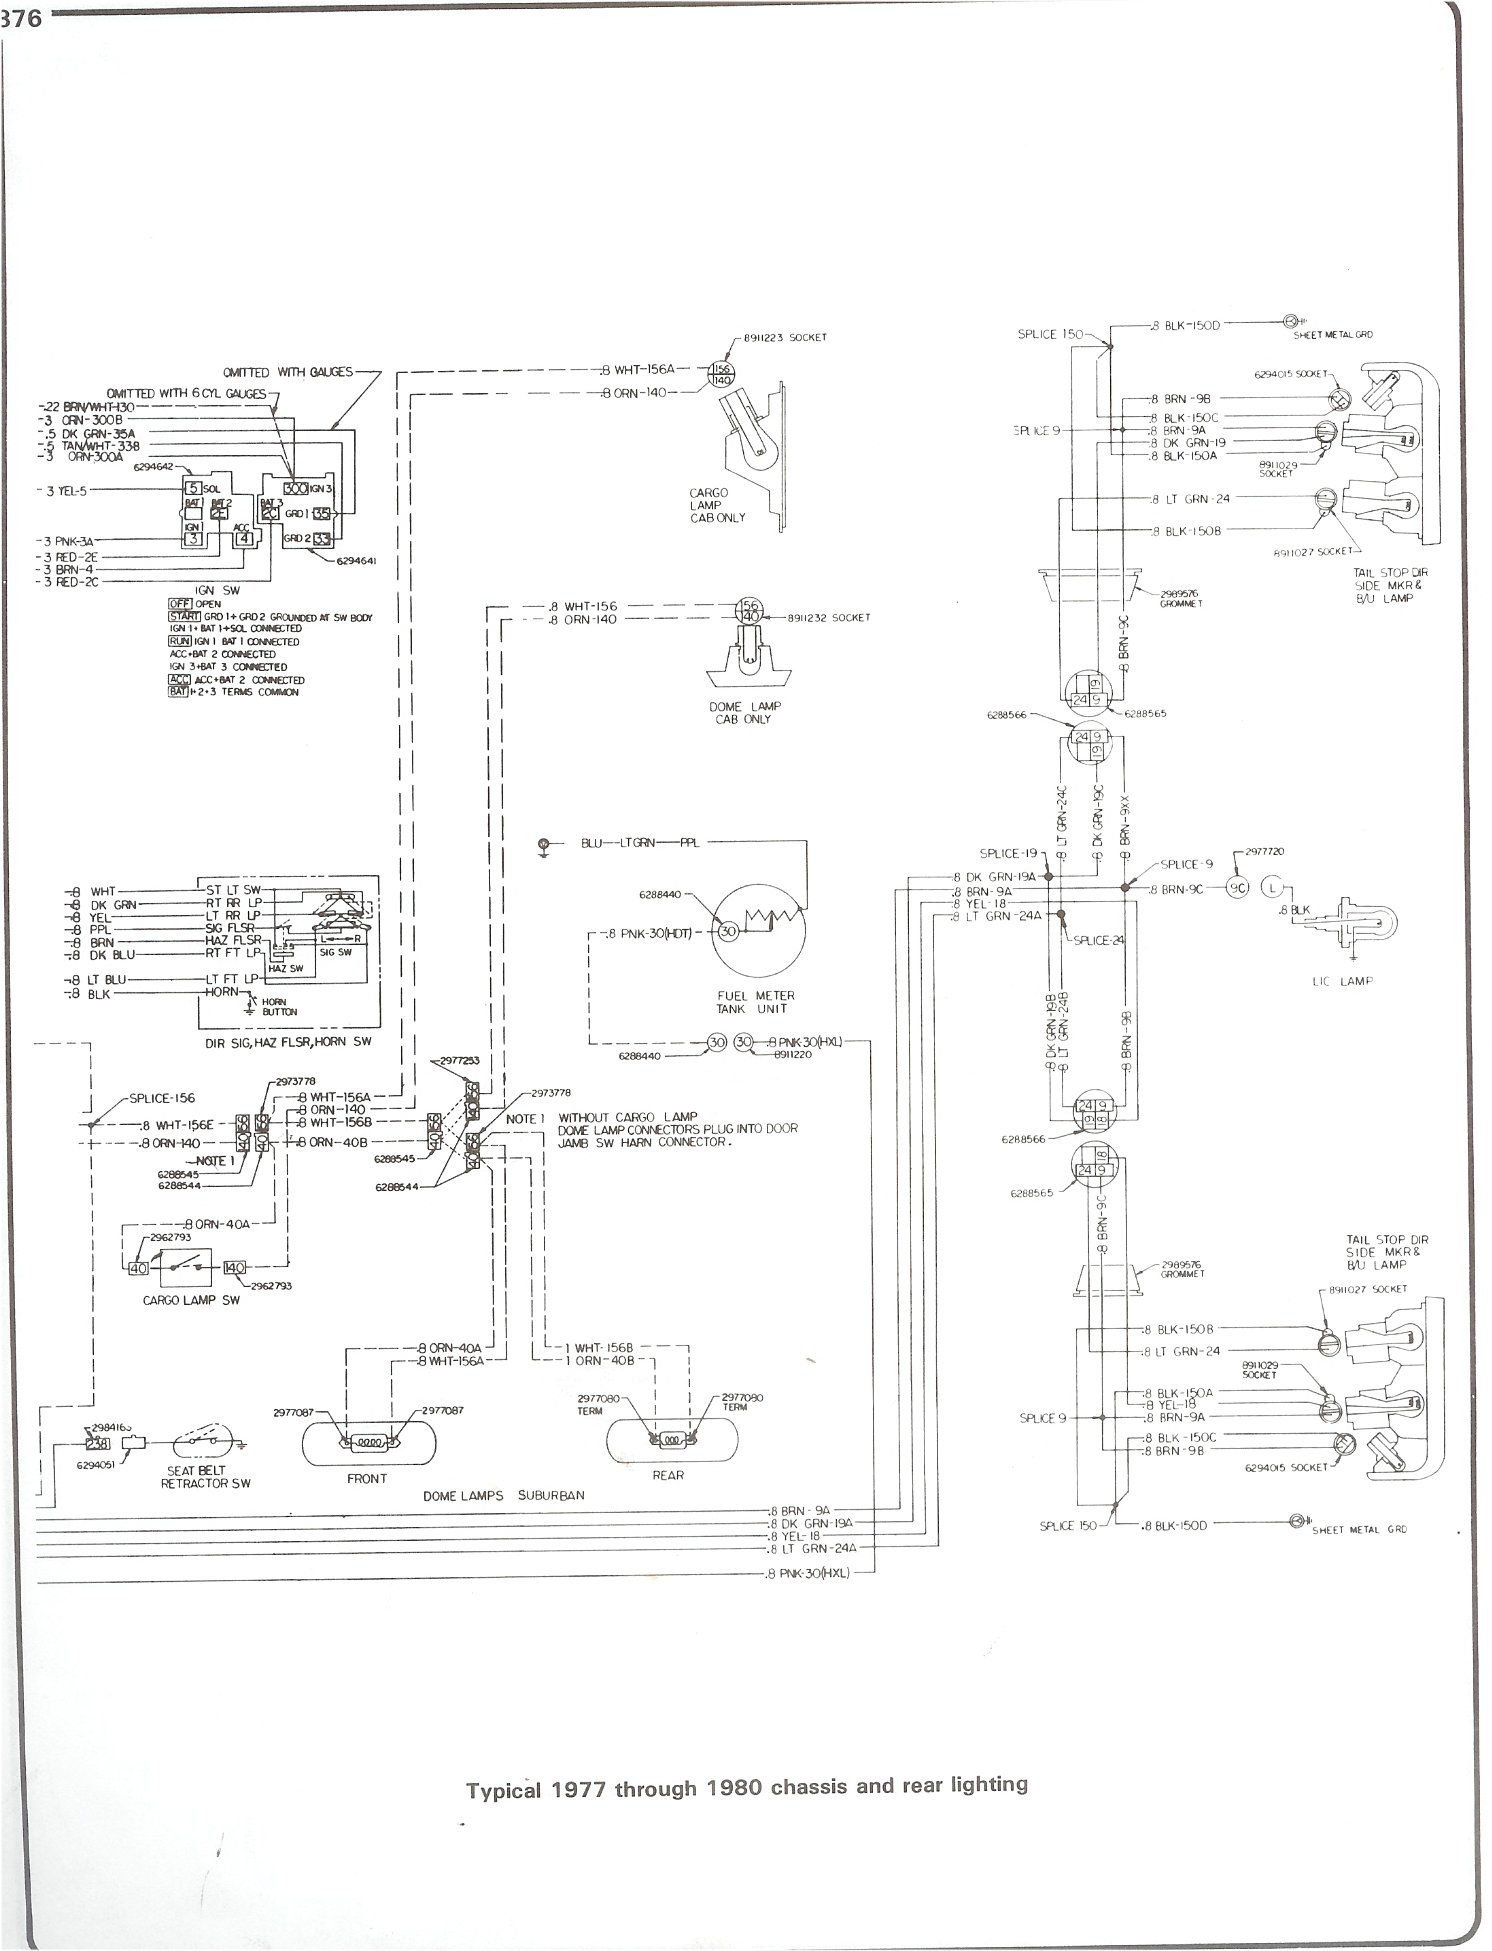 Complete 73 87 Wiring Diagrams Diagram For 1986 P30 Chevy Step Van Free 77 80 Chassis And Rear Lighting